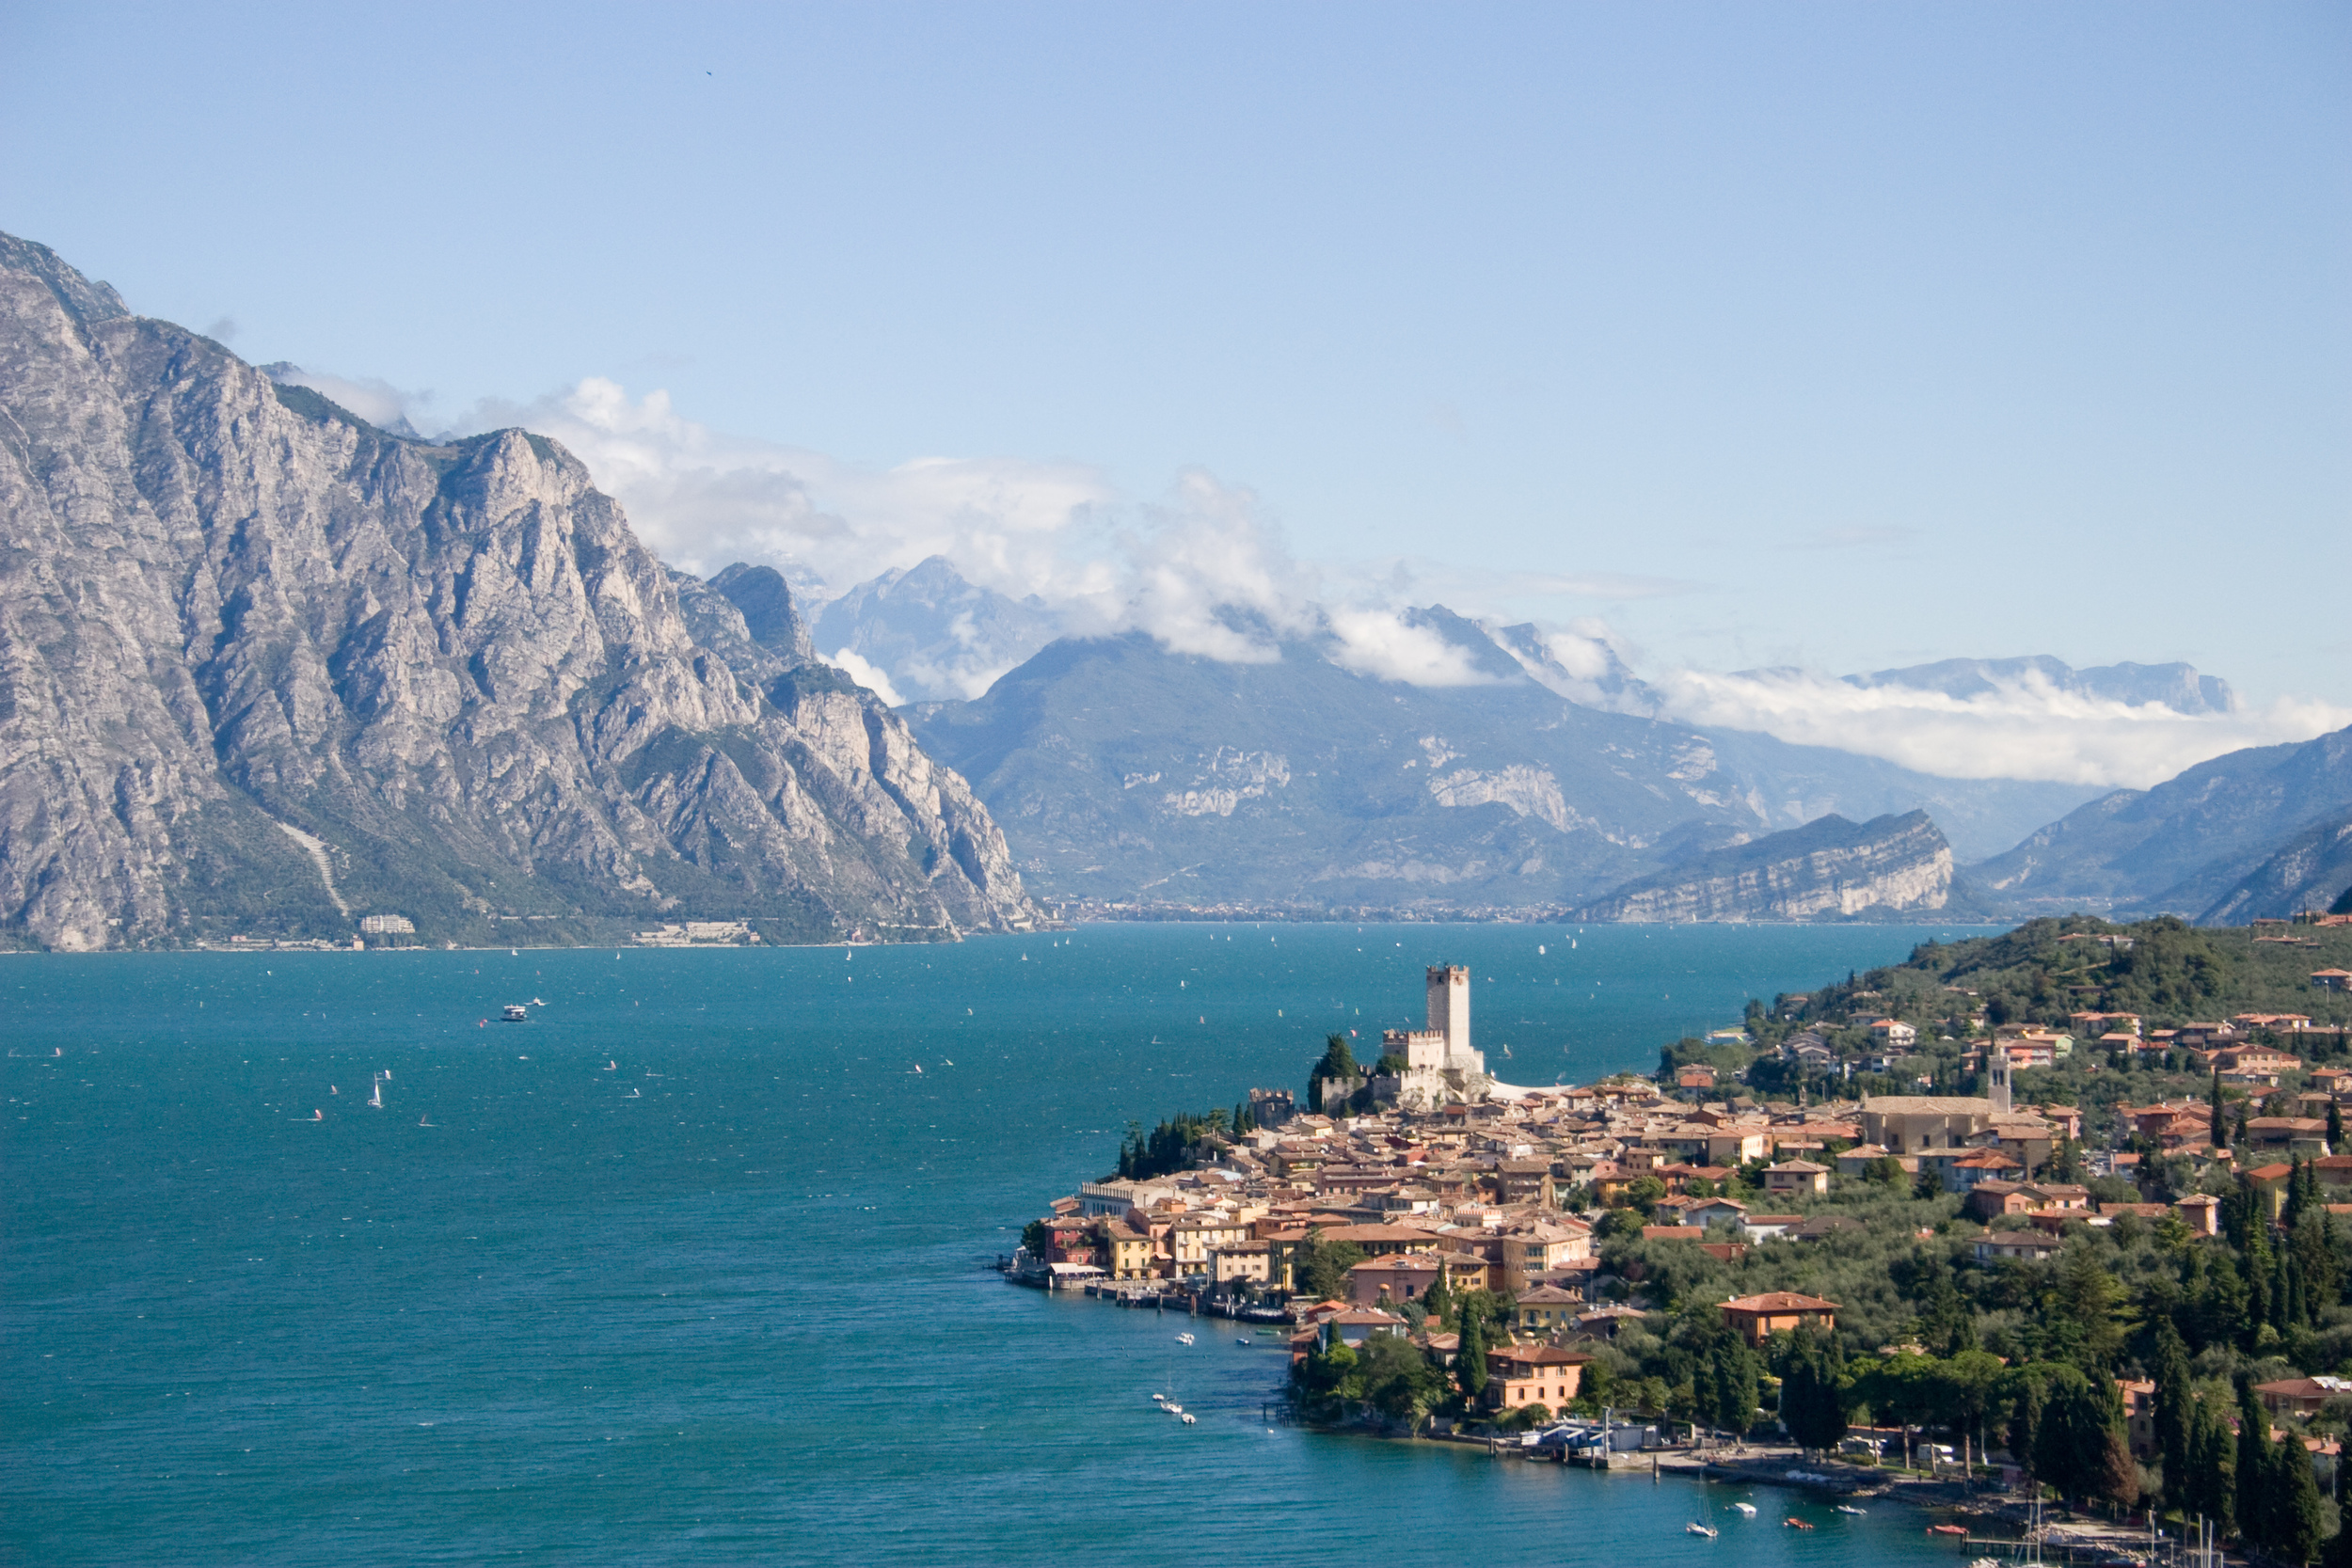 A picture of Lake Garda in the north of Italy, the setting of a short story by the author Virginia Baily